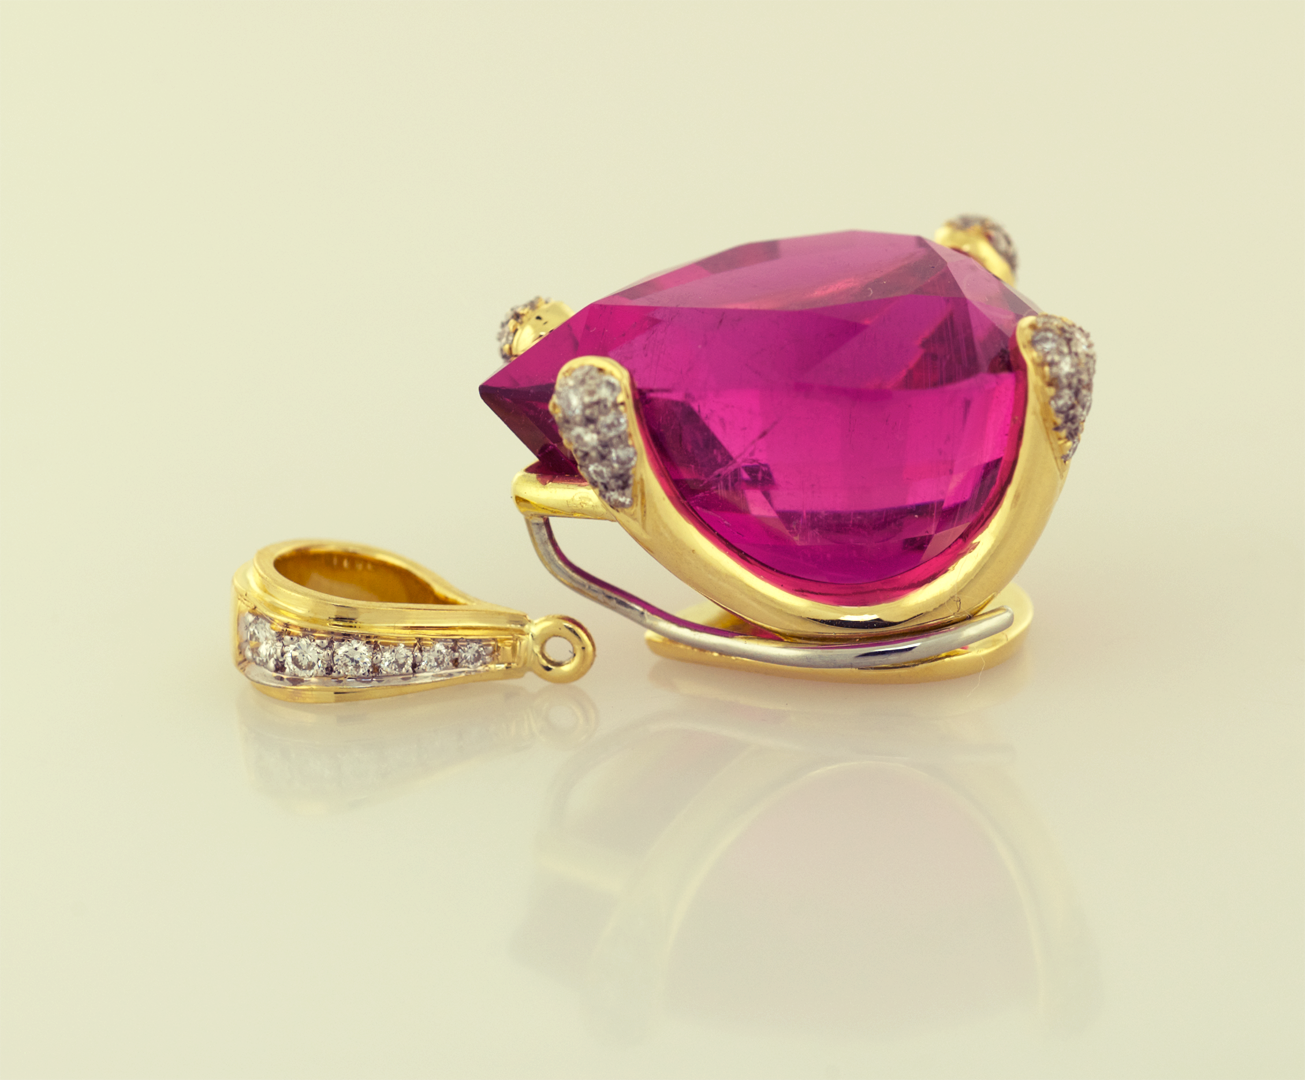 Hot Pink Tourmaline set in 18KT gold and articulating diamond pavé bail & prongs